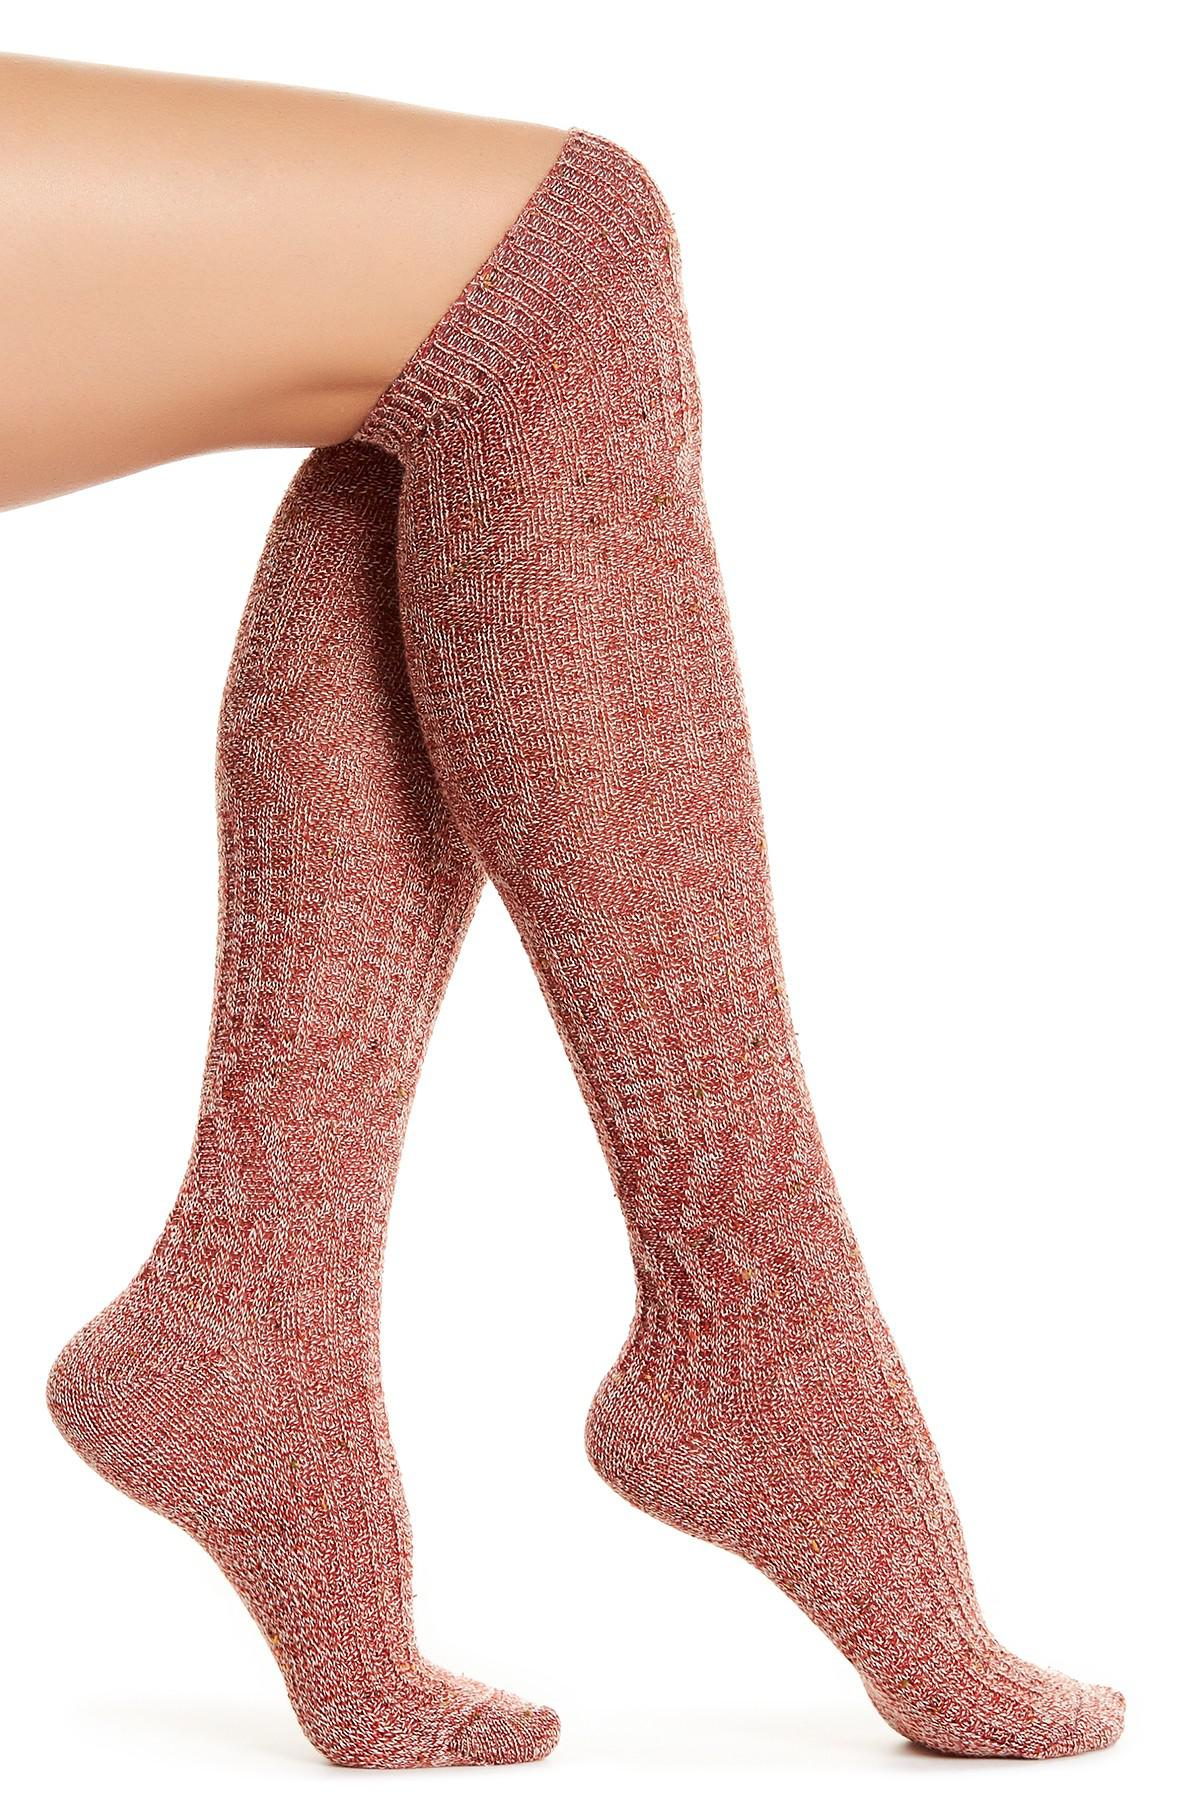 8b5181a97 Gallery. Previously sold at  Nordstrom Rack · Women s Knee High Socks ...